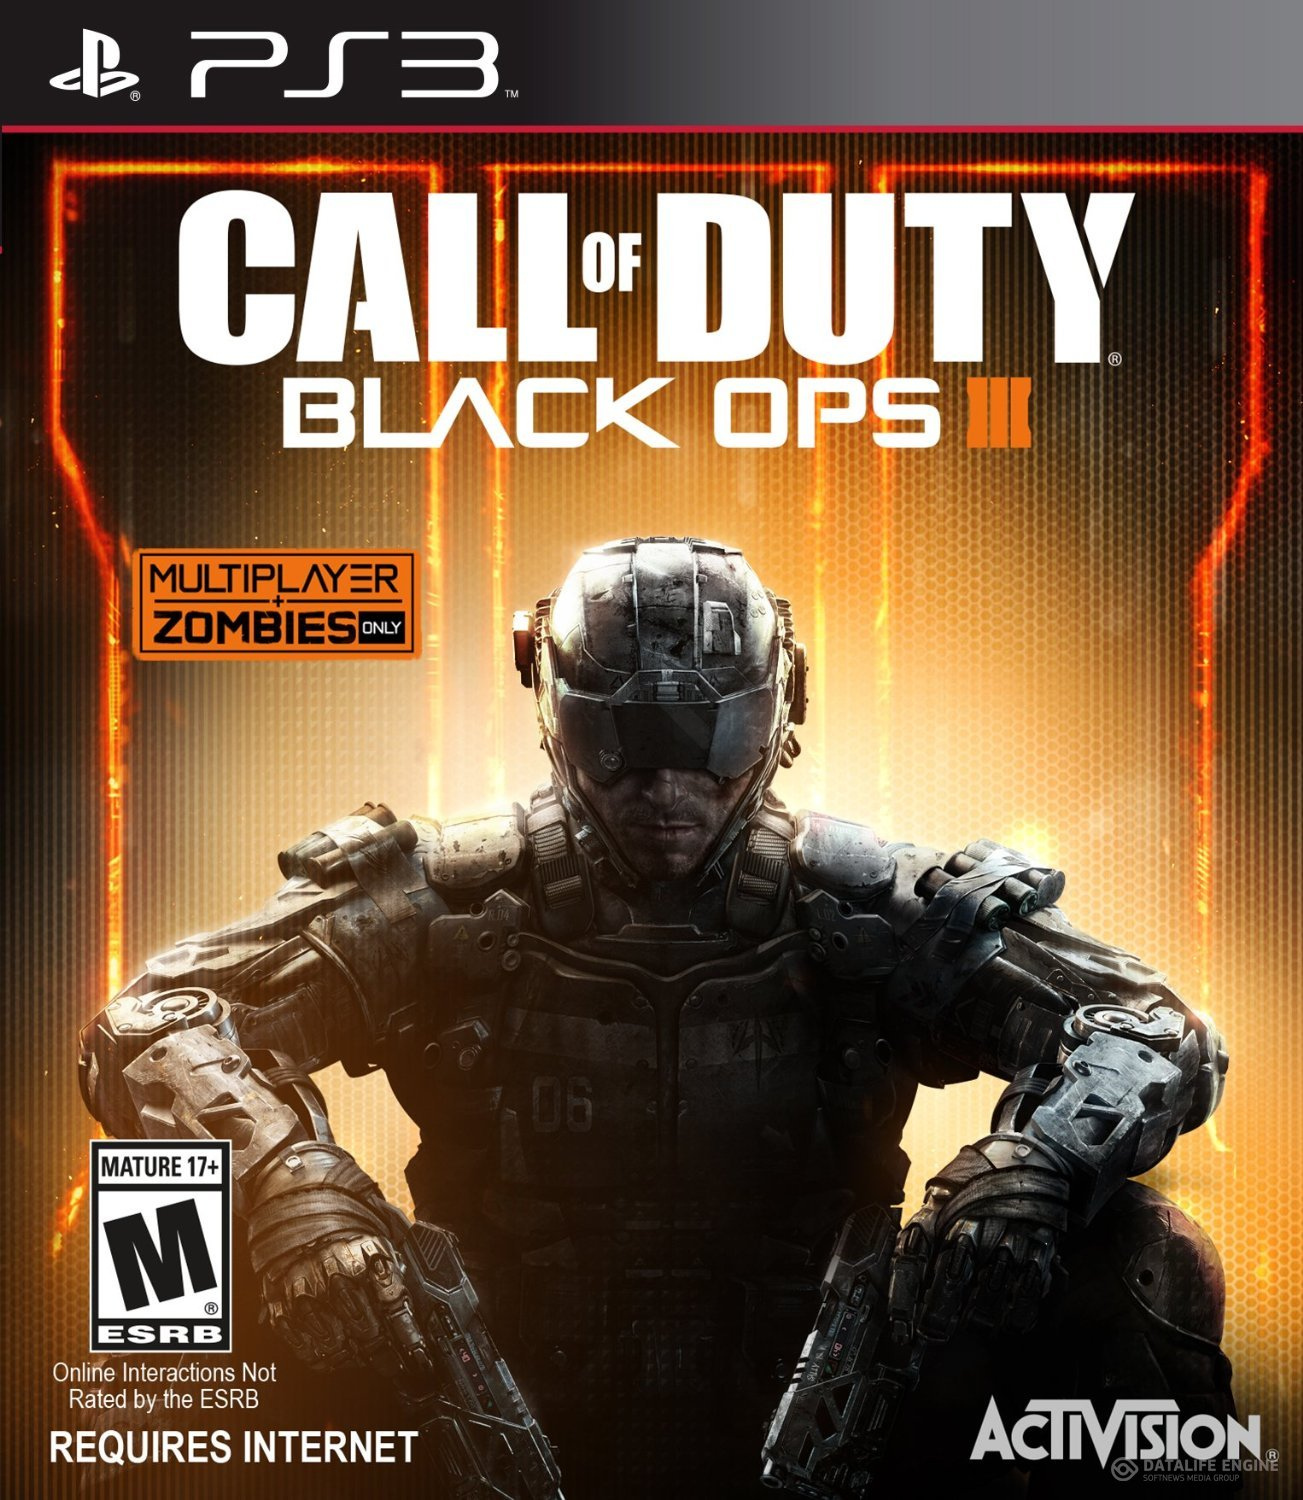 [PS3]Call of Duty: Black Ops 3 [EUR] 4.76 (Cobra ODE / E3 ODE PRO ISO)